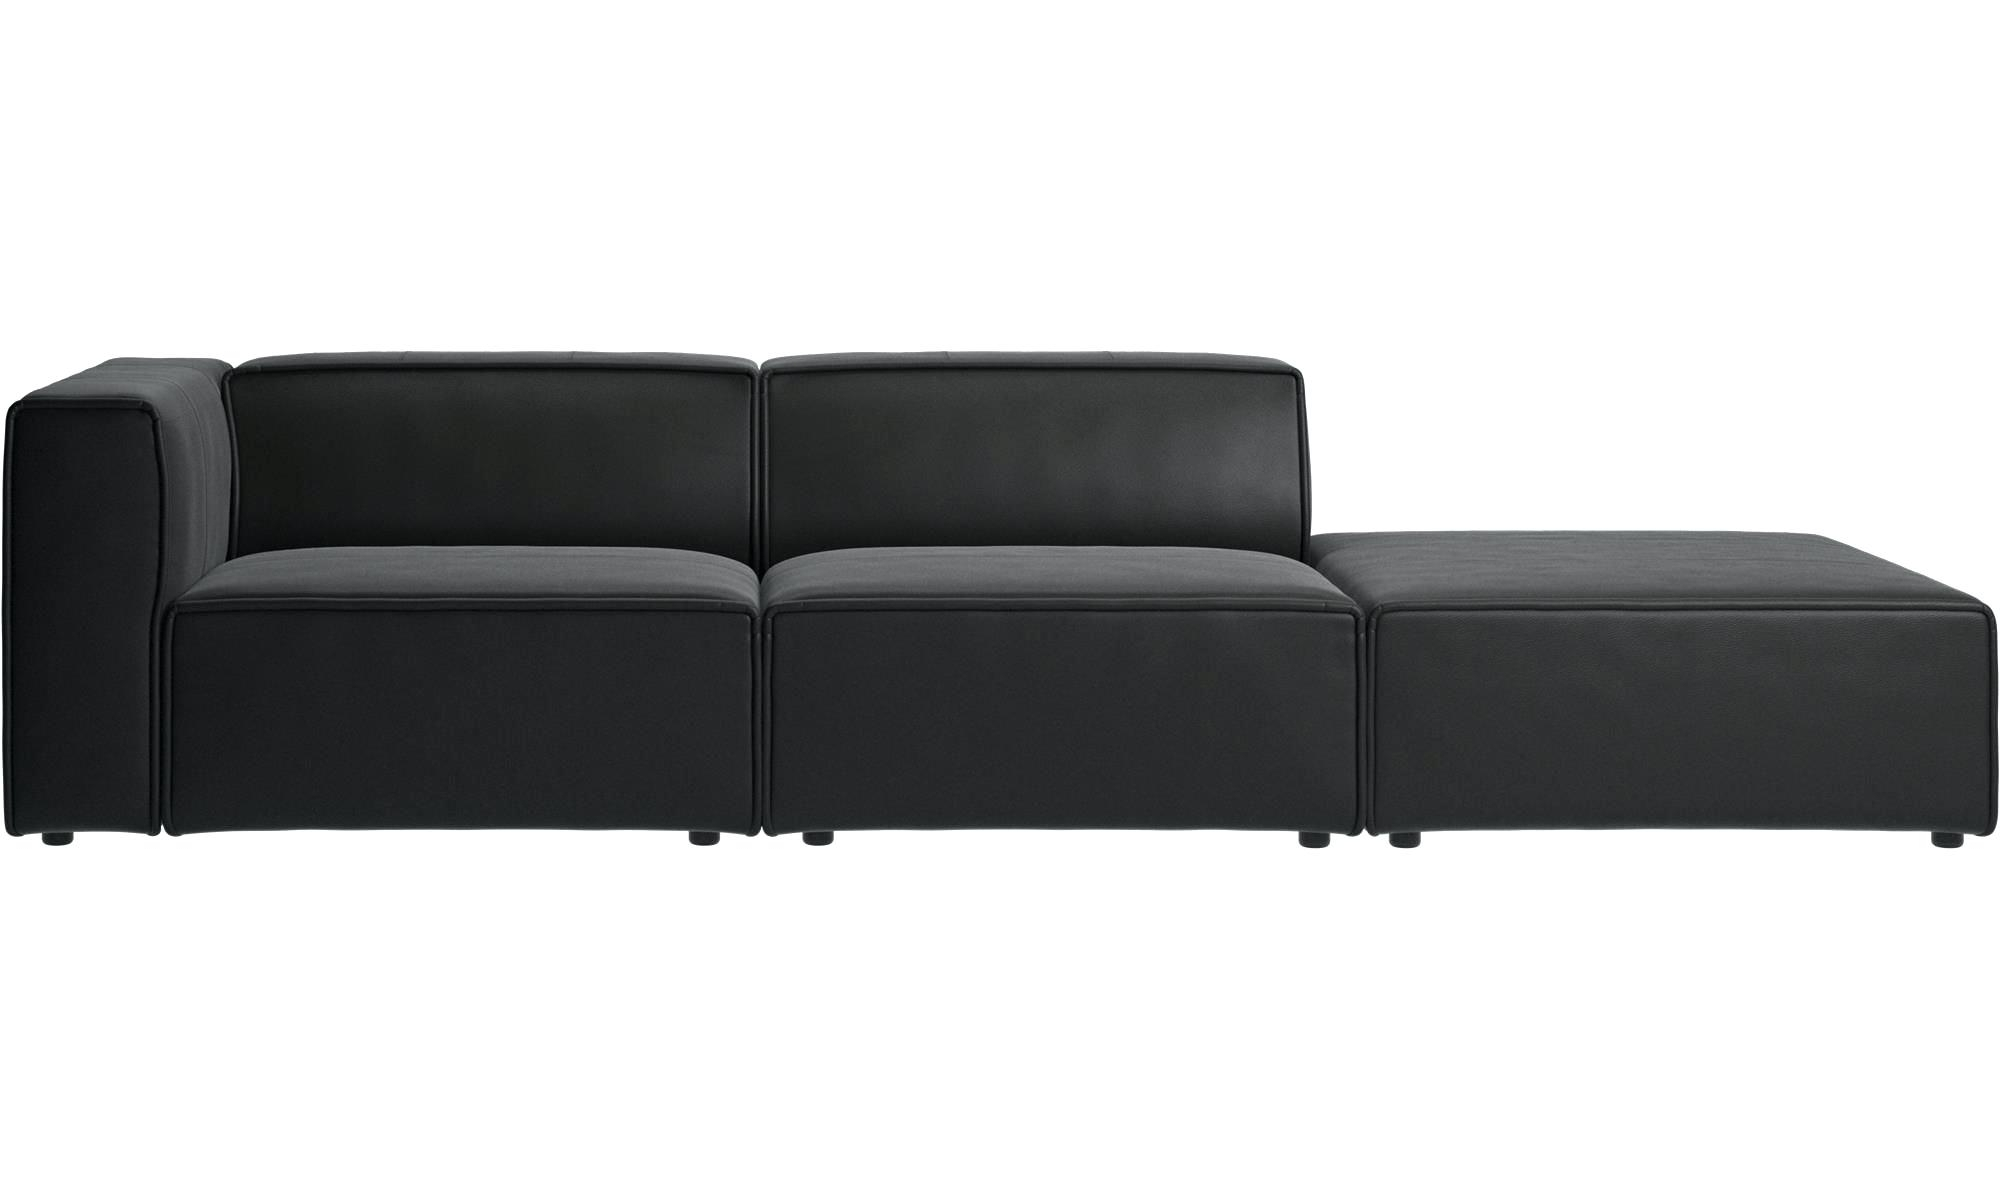 Most Popular Russ Sofa Bed With Chaise – Mariaalcocer In Russ Sofa Beds With Chaise (View 5 of 15)